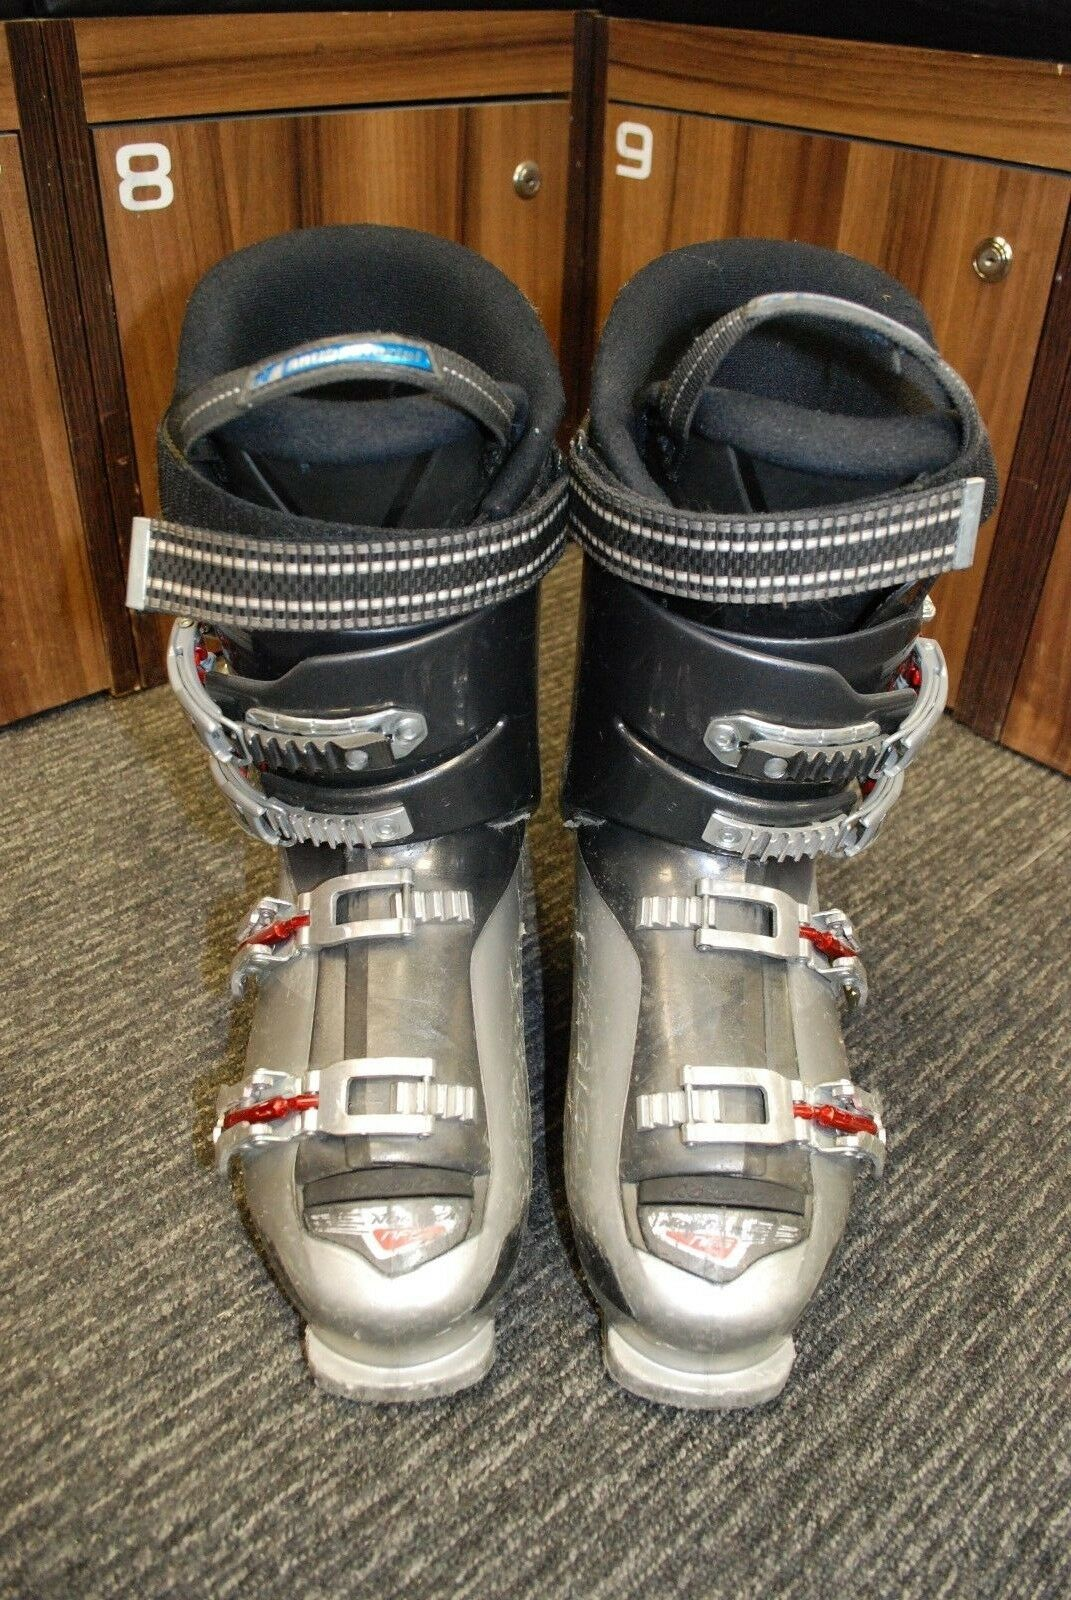 Nordica Cruise NFS 280 Ski Boots (; ) + FREE BRAND NEW  Boots Bag